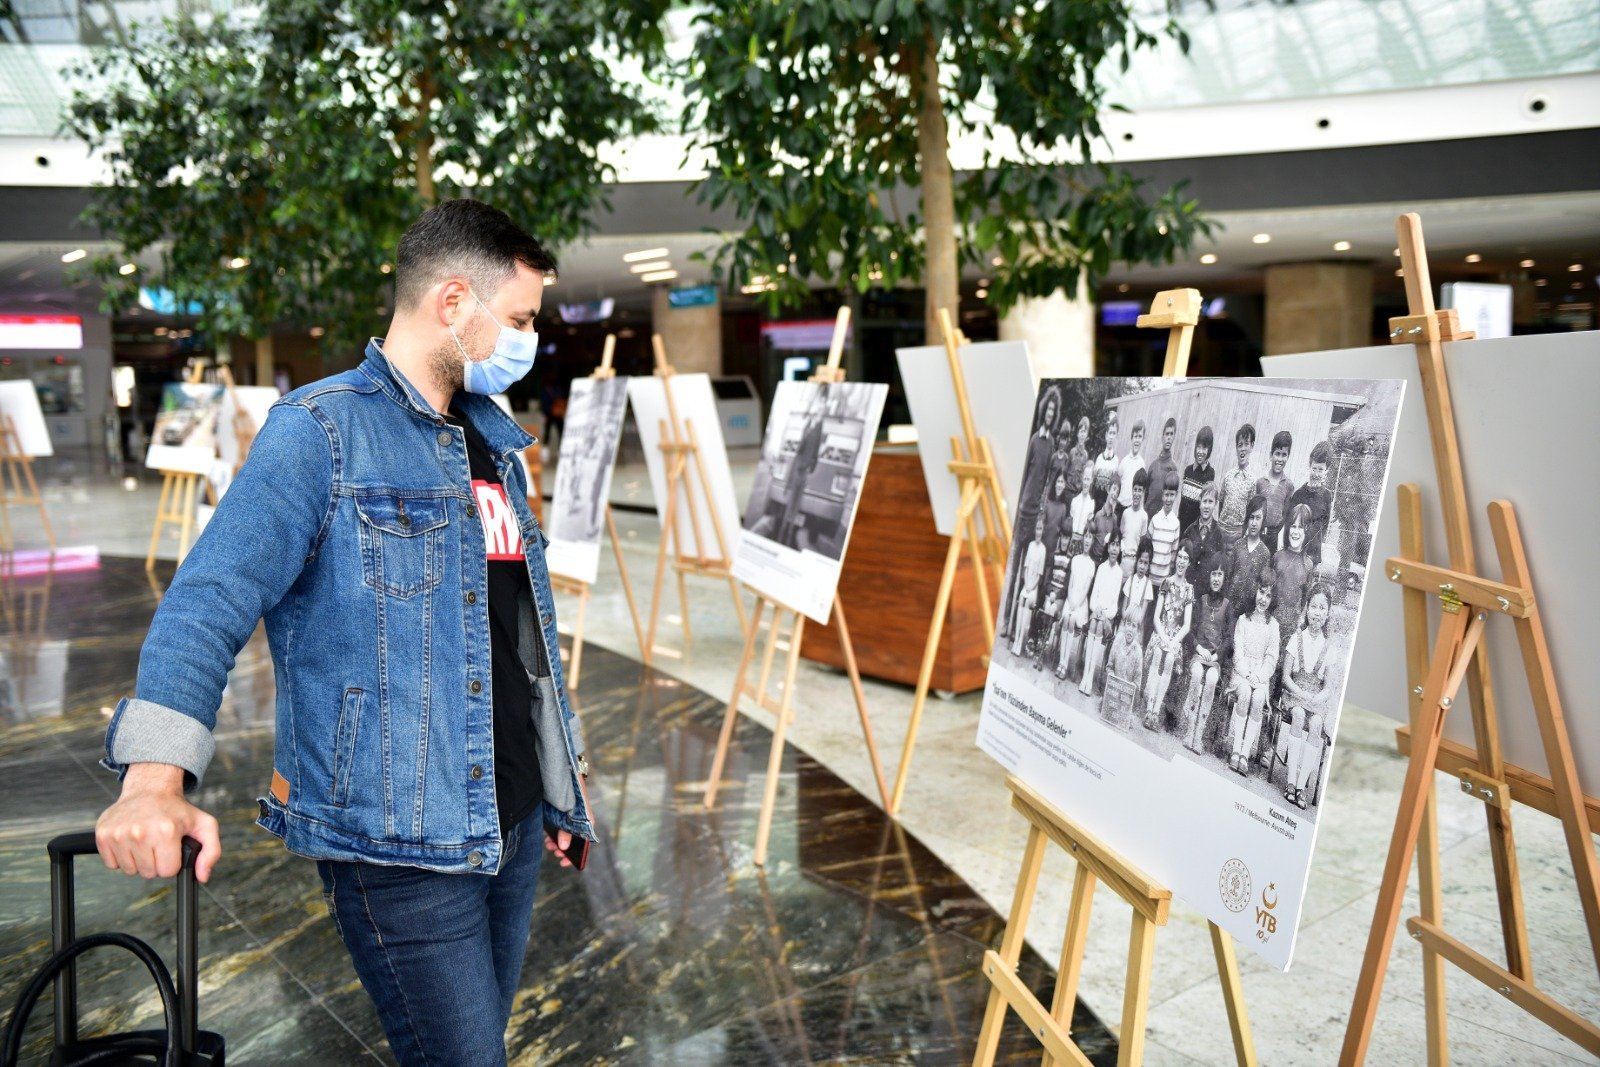 The exhibition includes 41 photos revealing memories of citizens who migrated to other countries. (AA PHOTO)